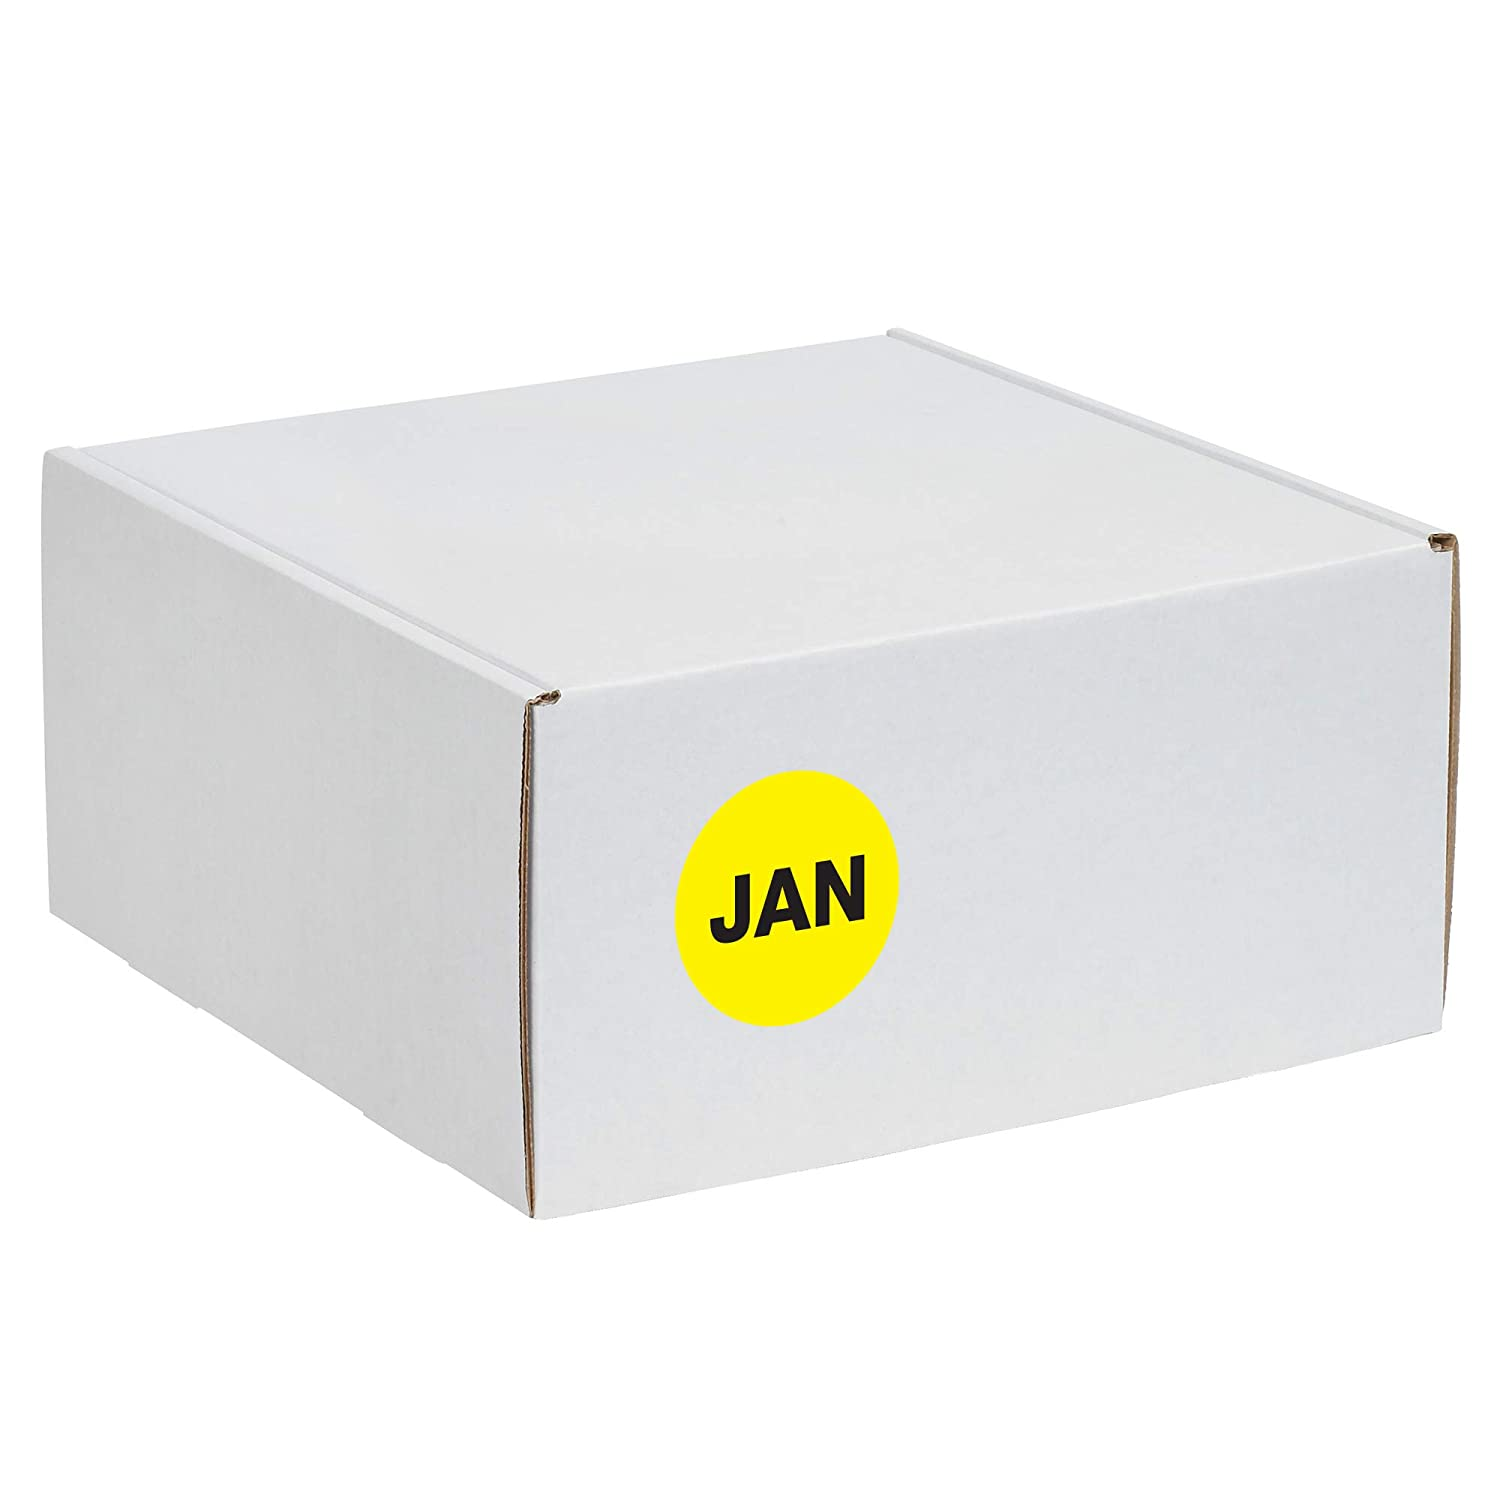 1 Circle Fluorescent Yellow 1 Roll 500 Labels Per Roll JAN Months of The Year Labels//Stickers